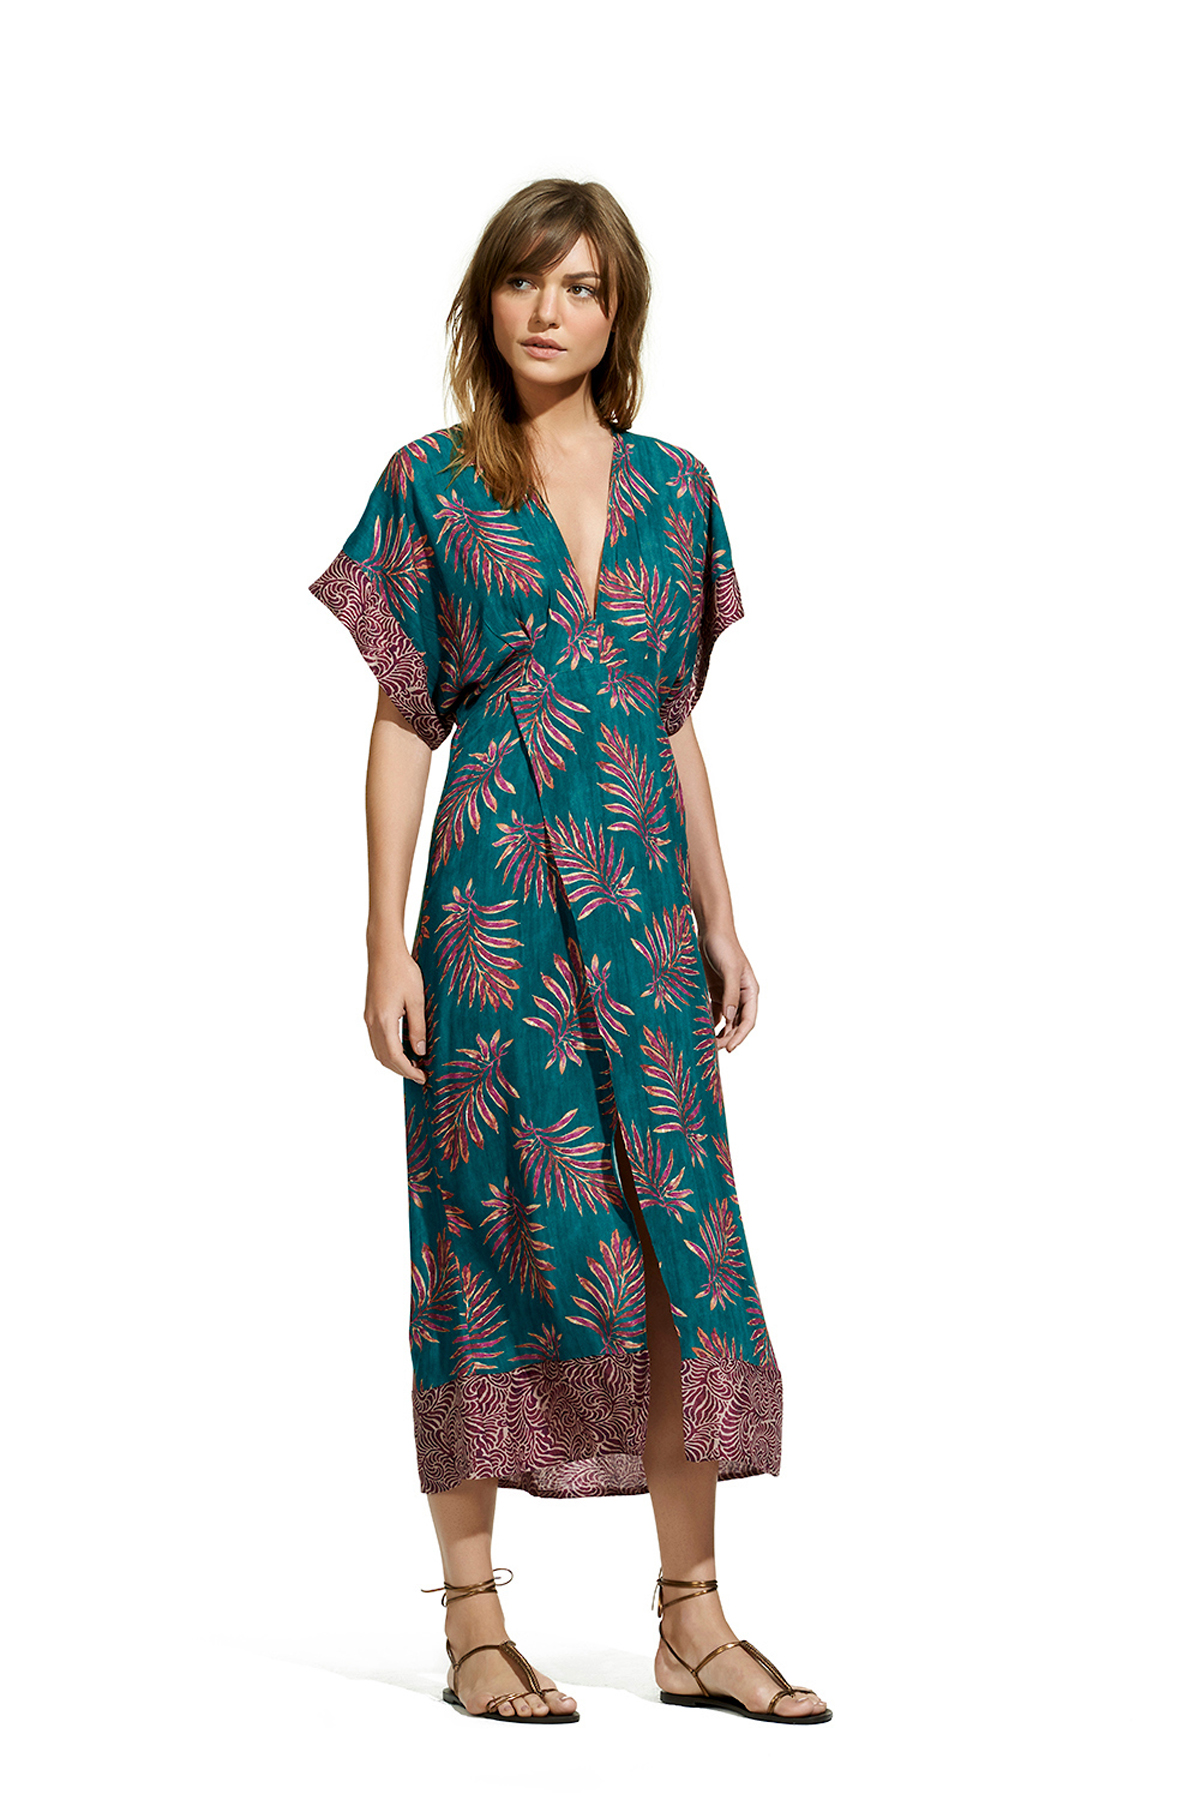 11-leaves-dione-caftan-vs172003-1215-f-copiar